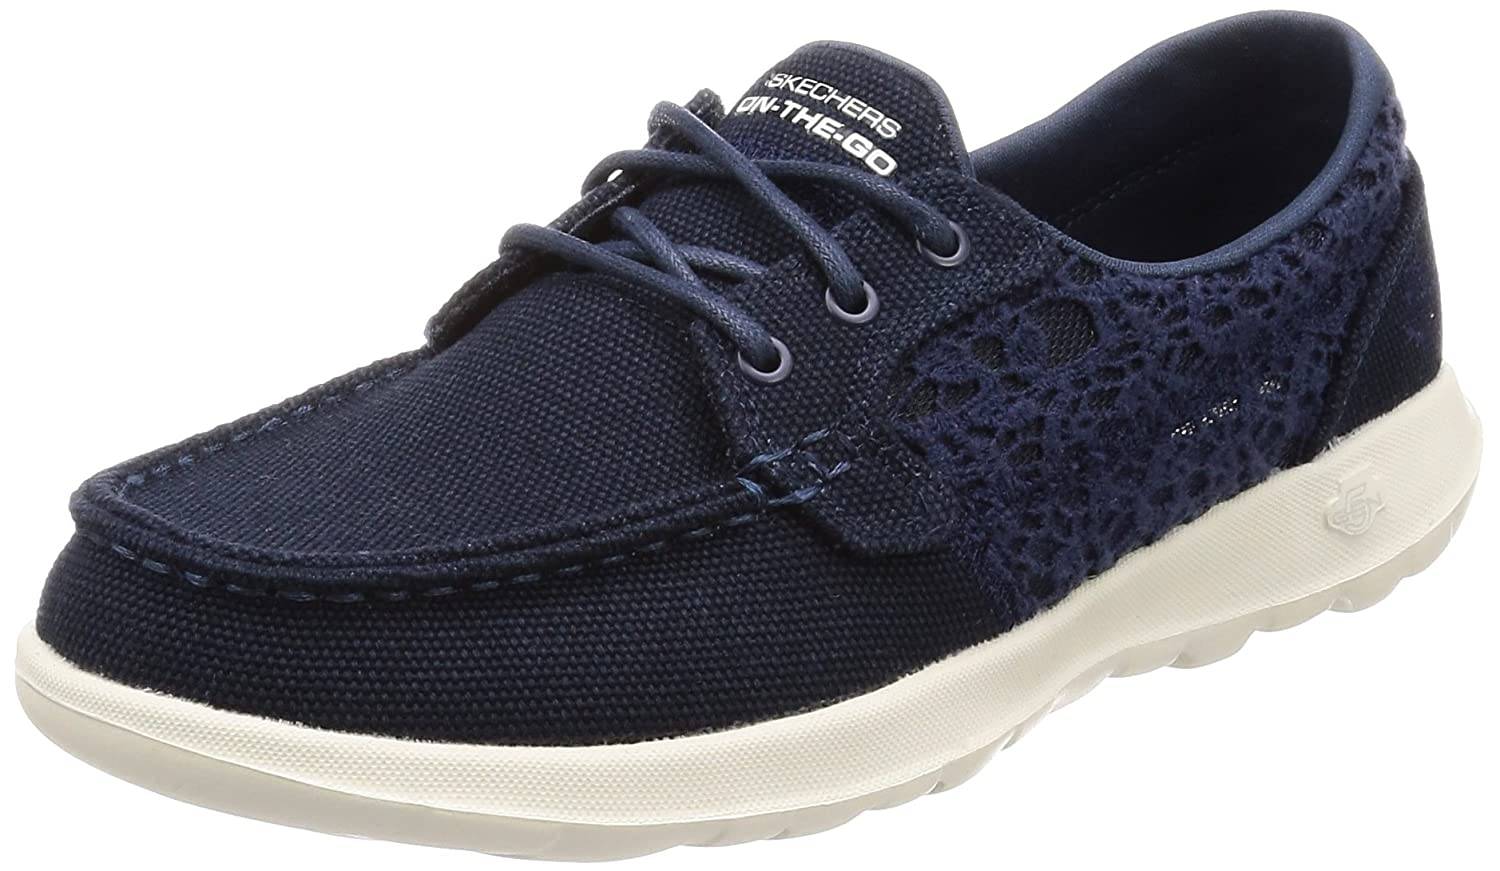 Skechers Women's Go Walk Lite-15431 Boat Shoe B076TCBPYS 11 B(M) US|Navy